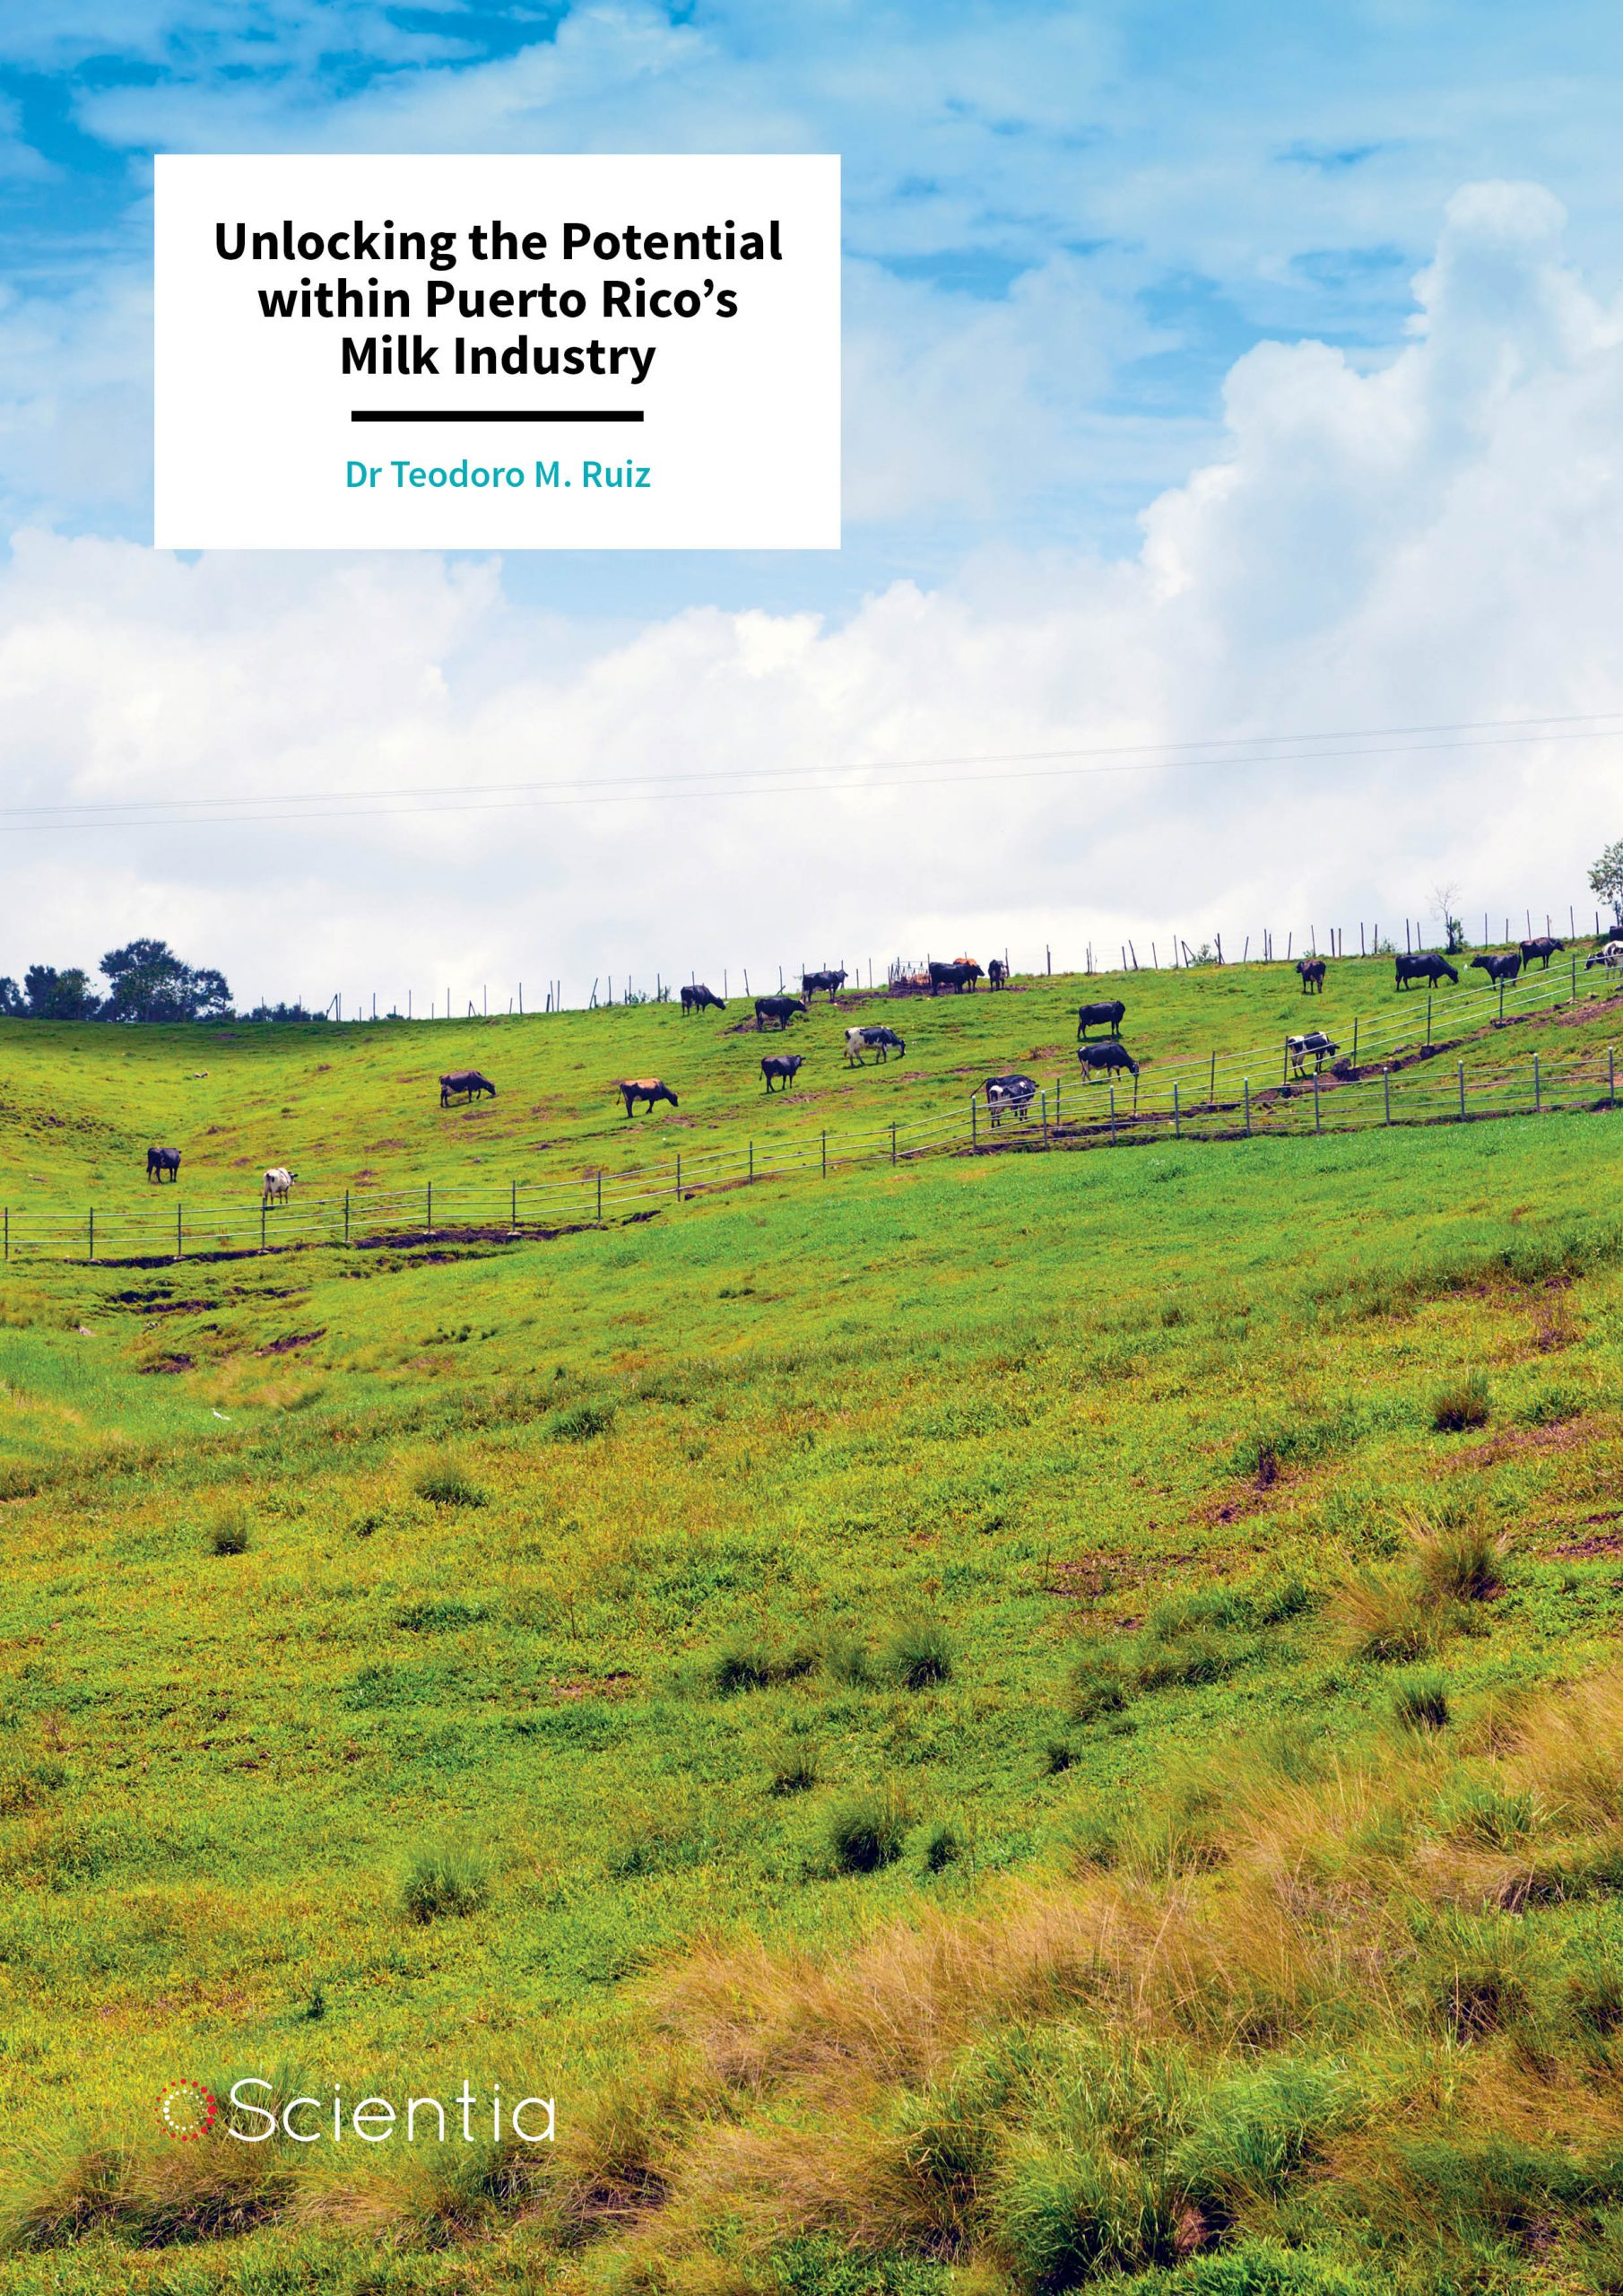 Dr Teodoro Ruiz – Unlocking the Potential within Puerto Rico's Milk Industry